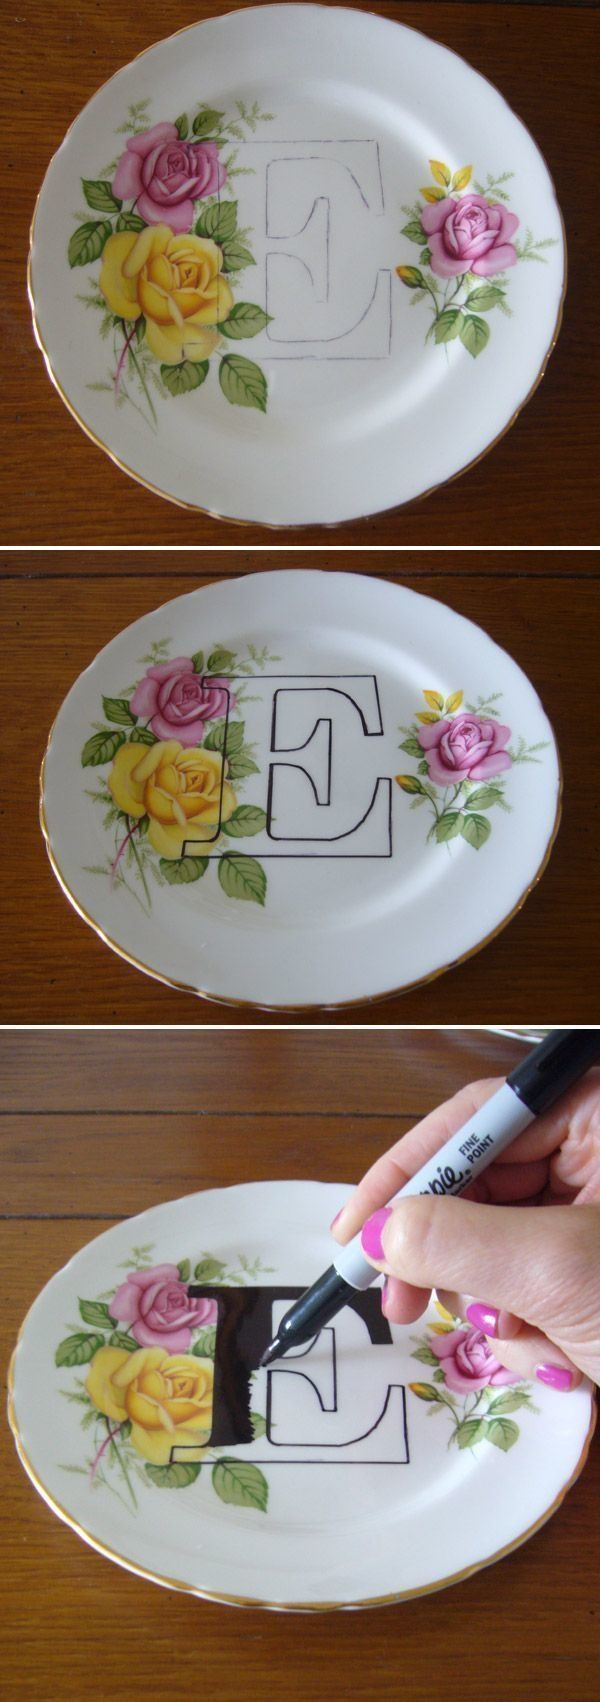 Letter your dishes.